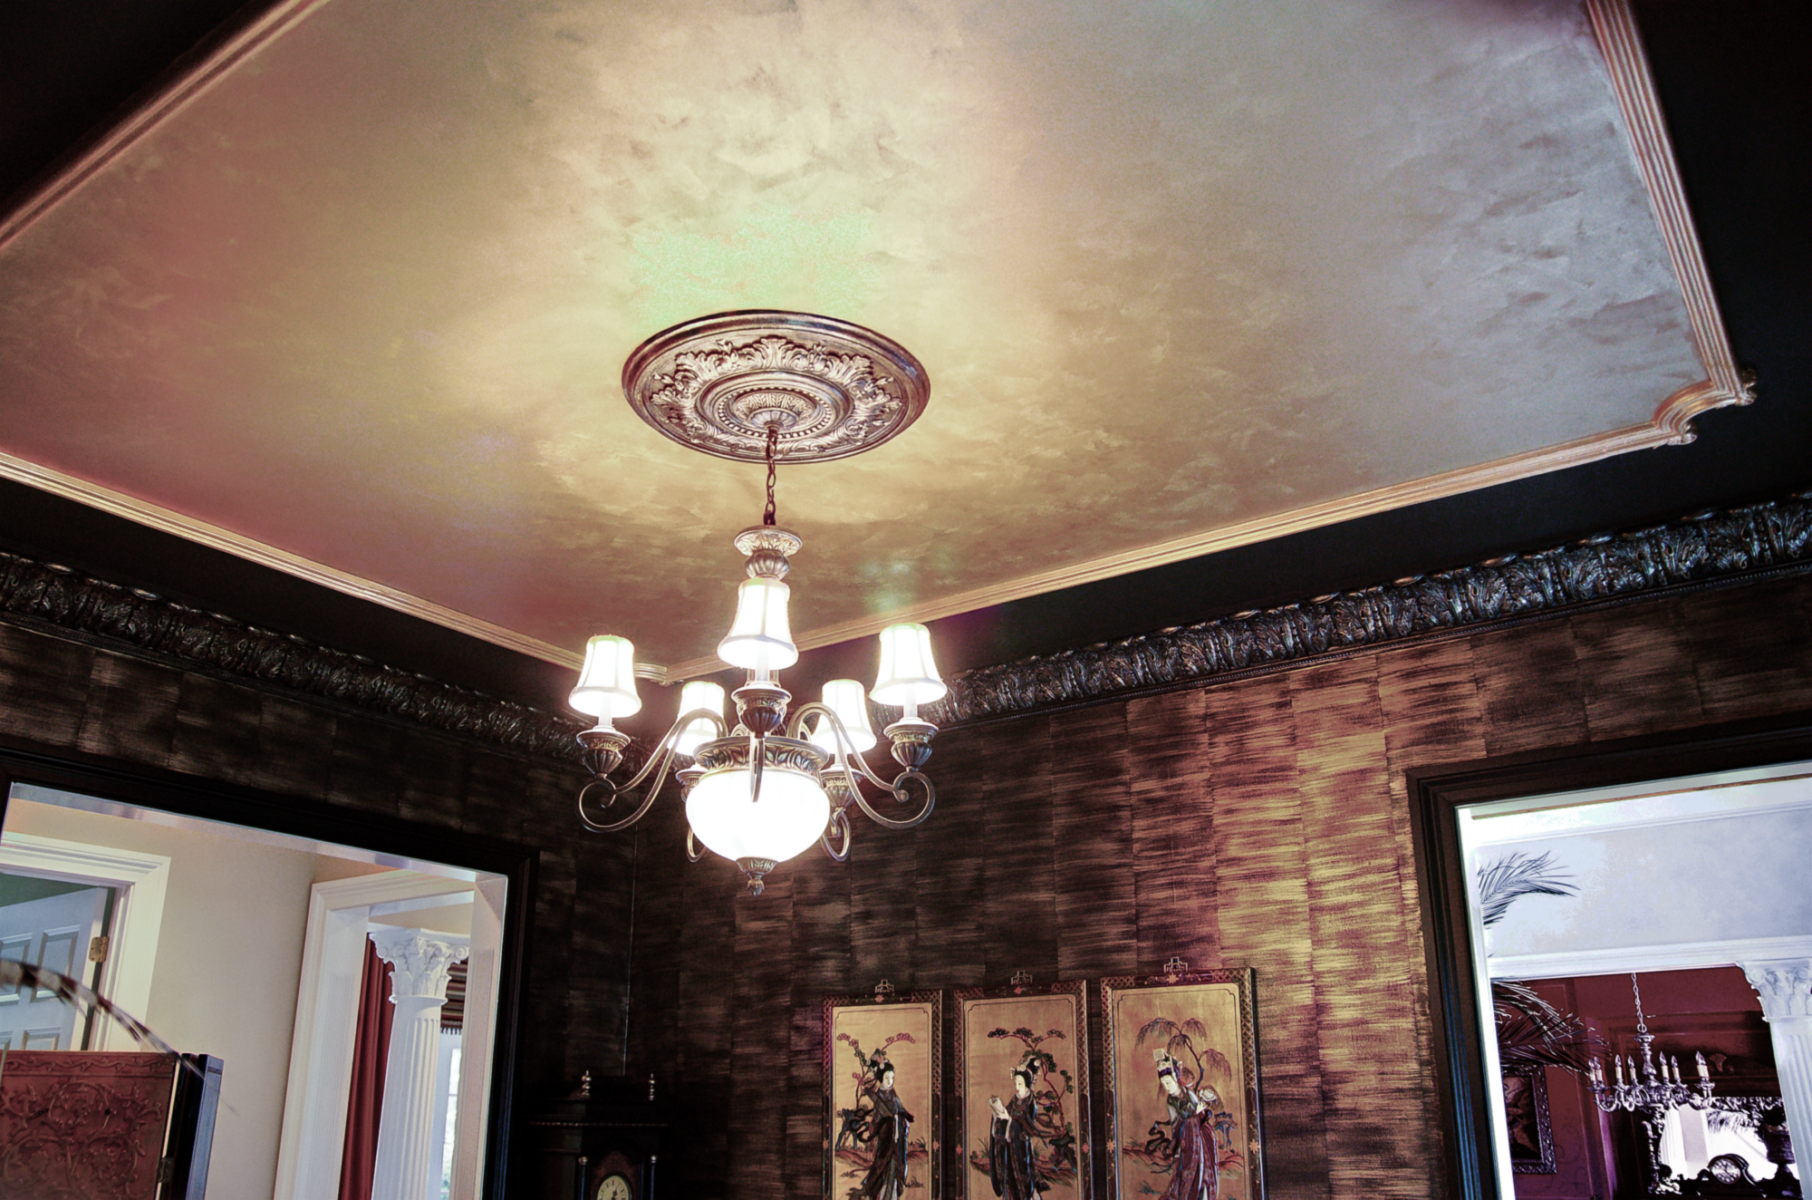 Black woodwork with gold faux bamboo walls and faux metal plaster cornice above.